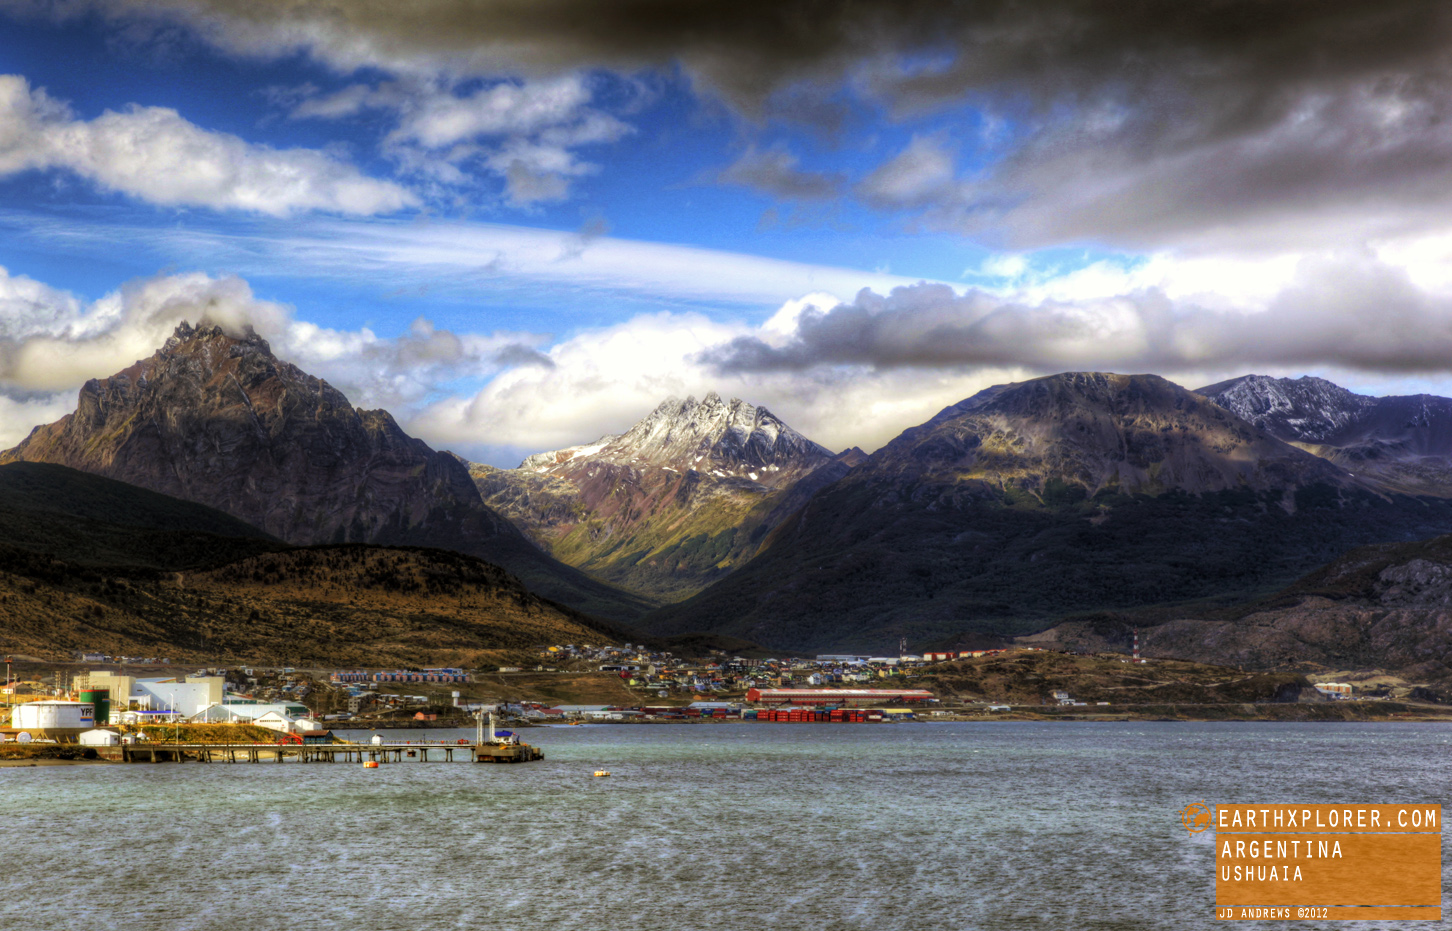 Ushuaia is the capital of Provincia de Tierra del Fuego and is regarded as the southernmost city in the world.